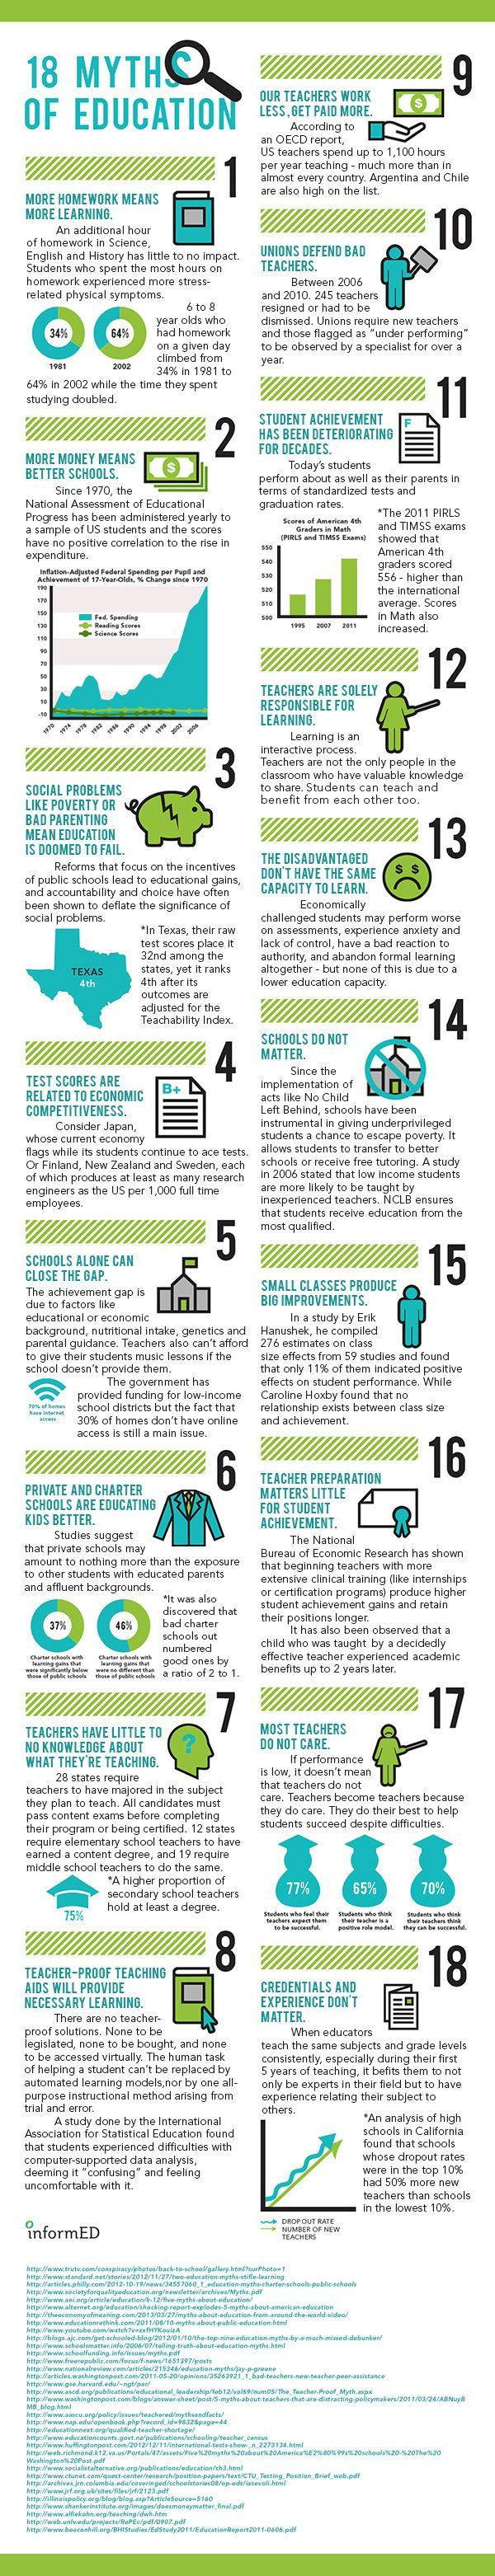 18 Myths People Believe About Education